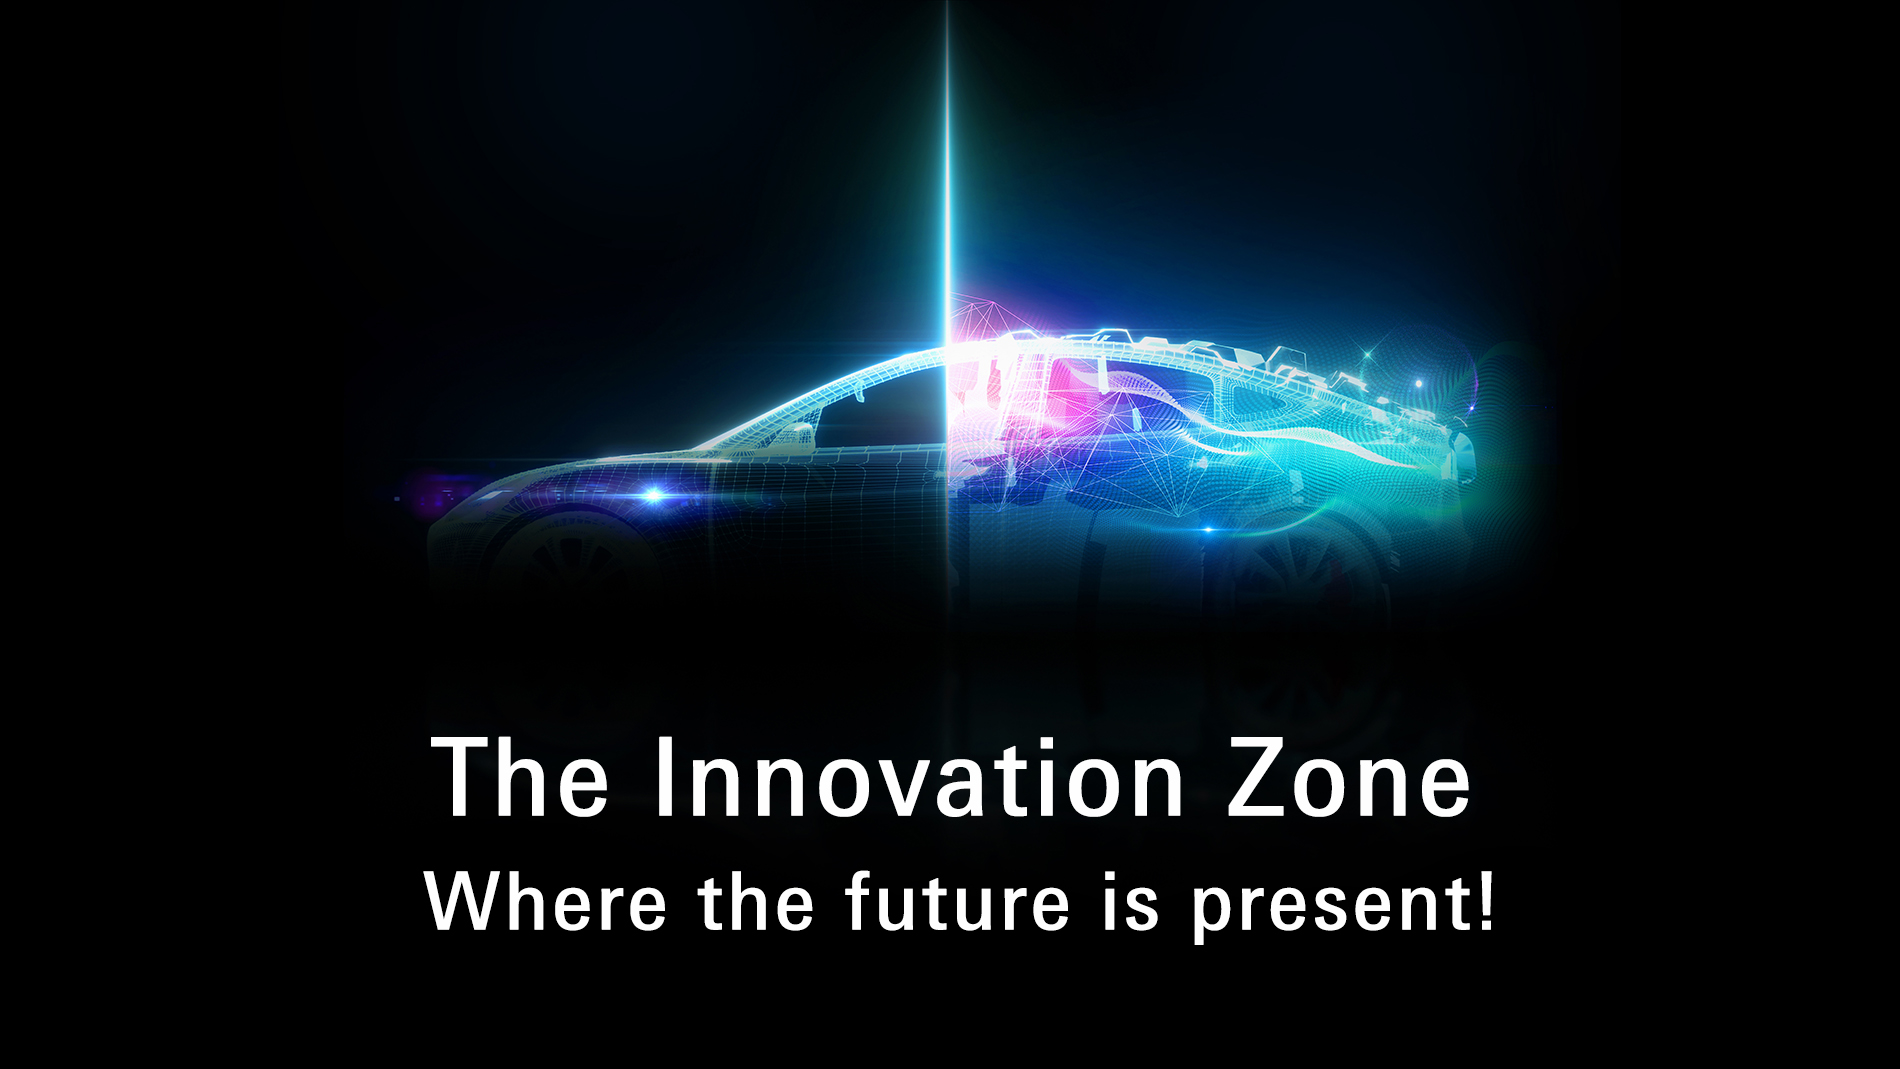 Innovation Zone Automechanika Dubai